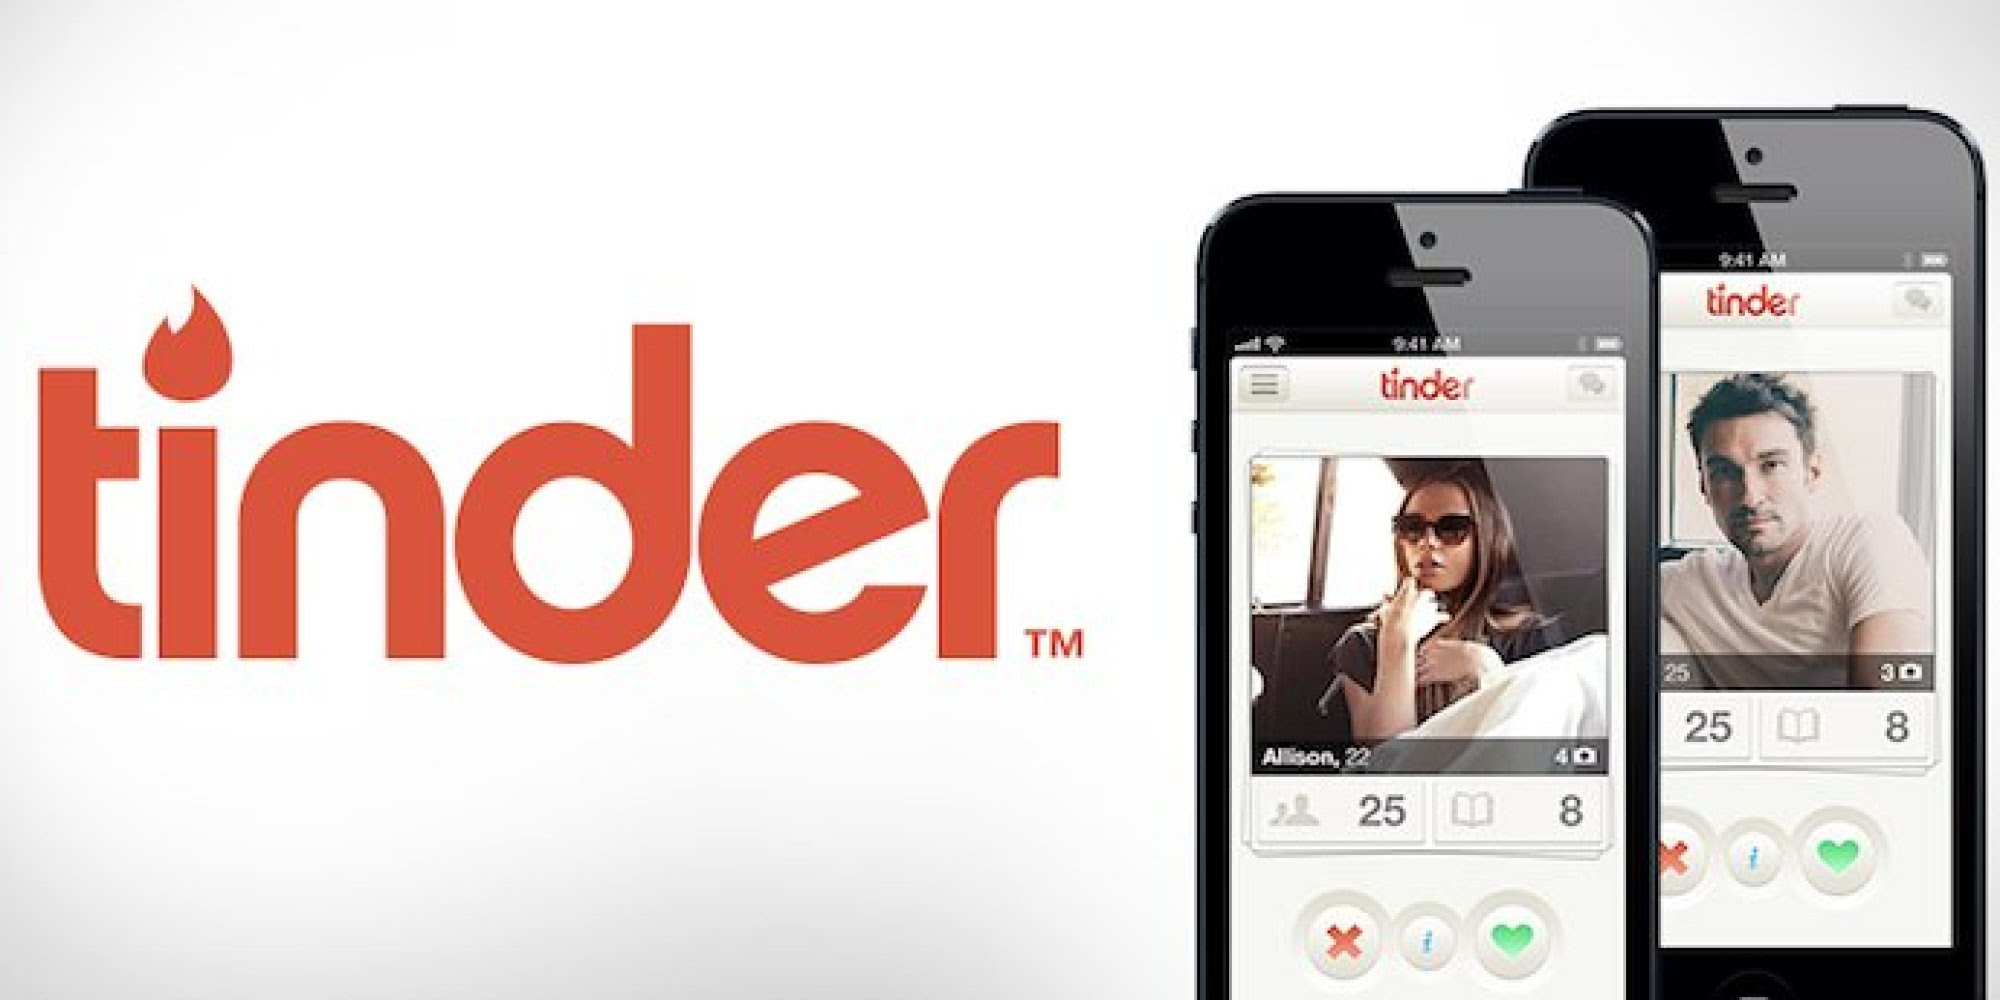 tinder, aplicaciones, ligar, inteligencia artificial, machine learning